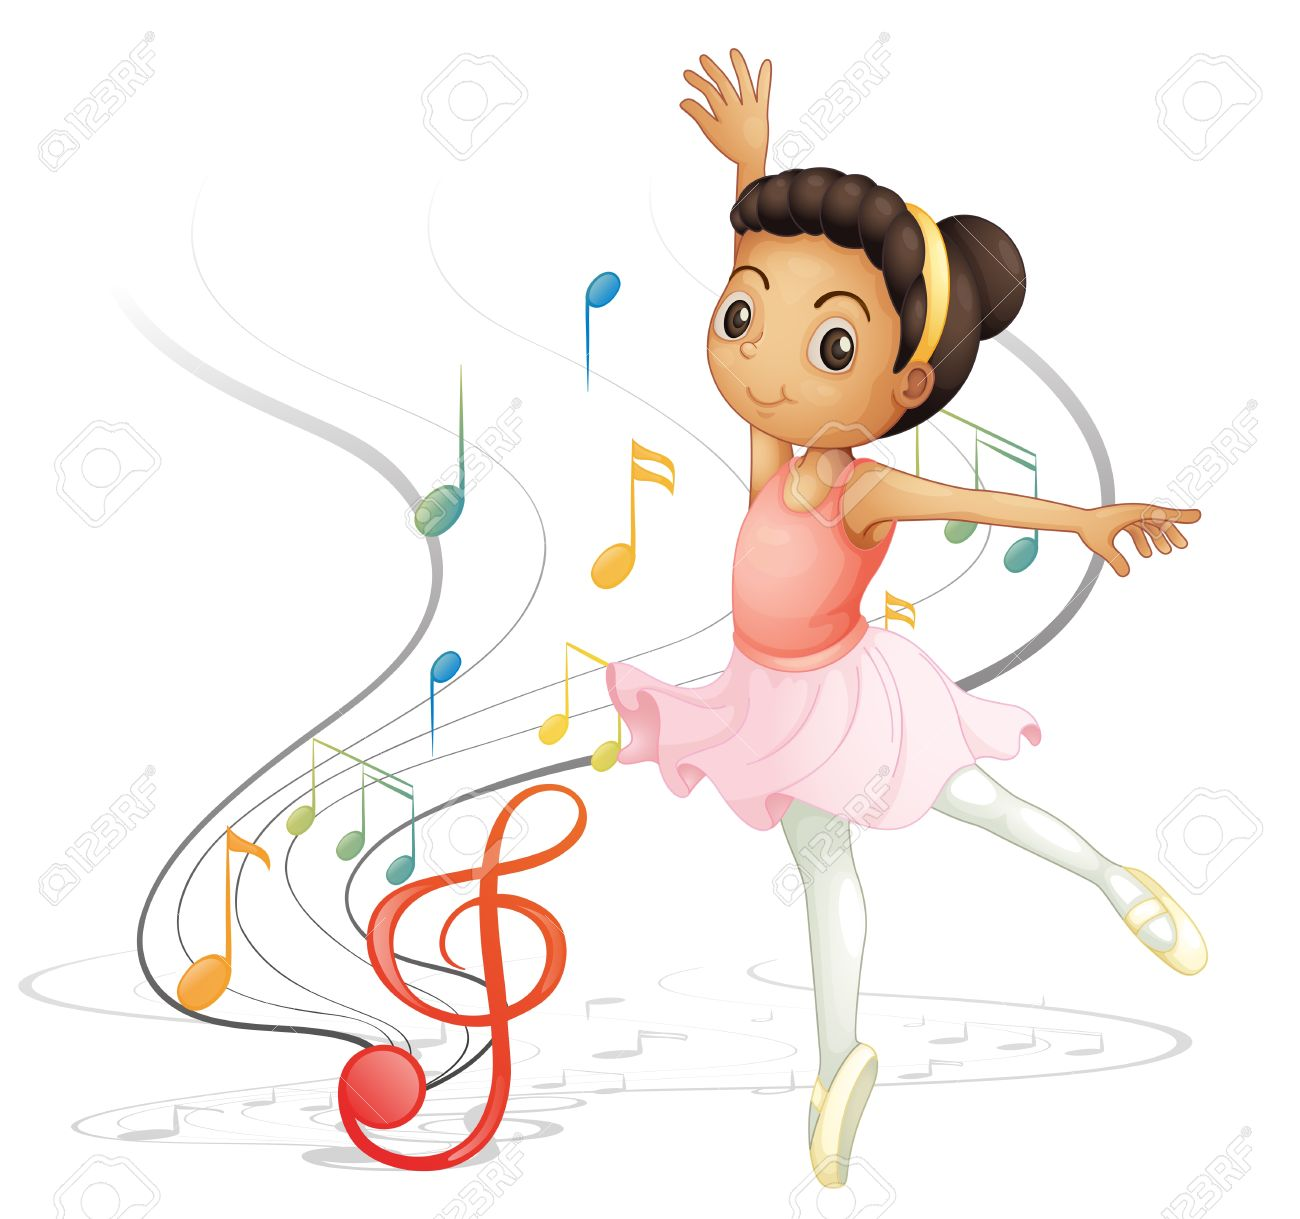 hight resolution of illustration of a girl dancing with musical notes on a white background stock vector 18052975